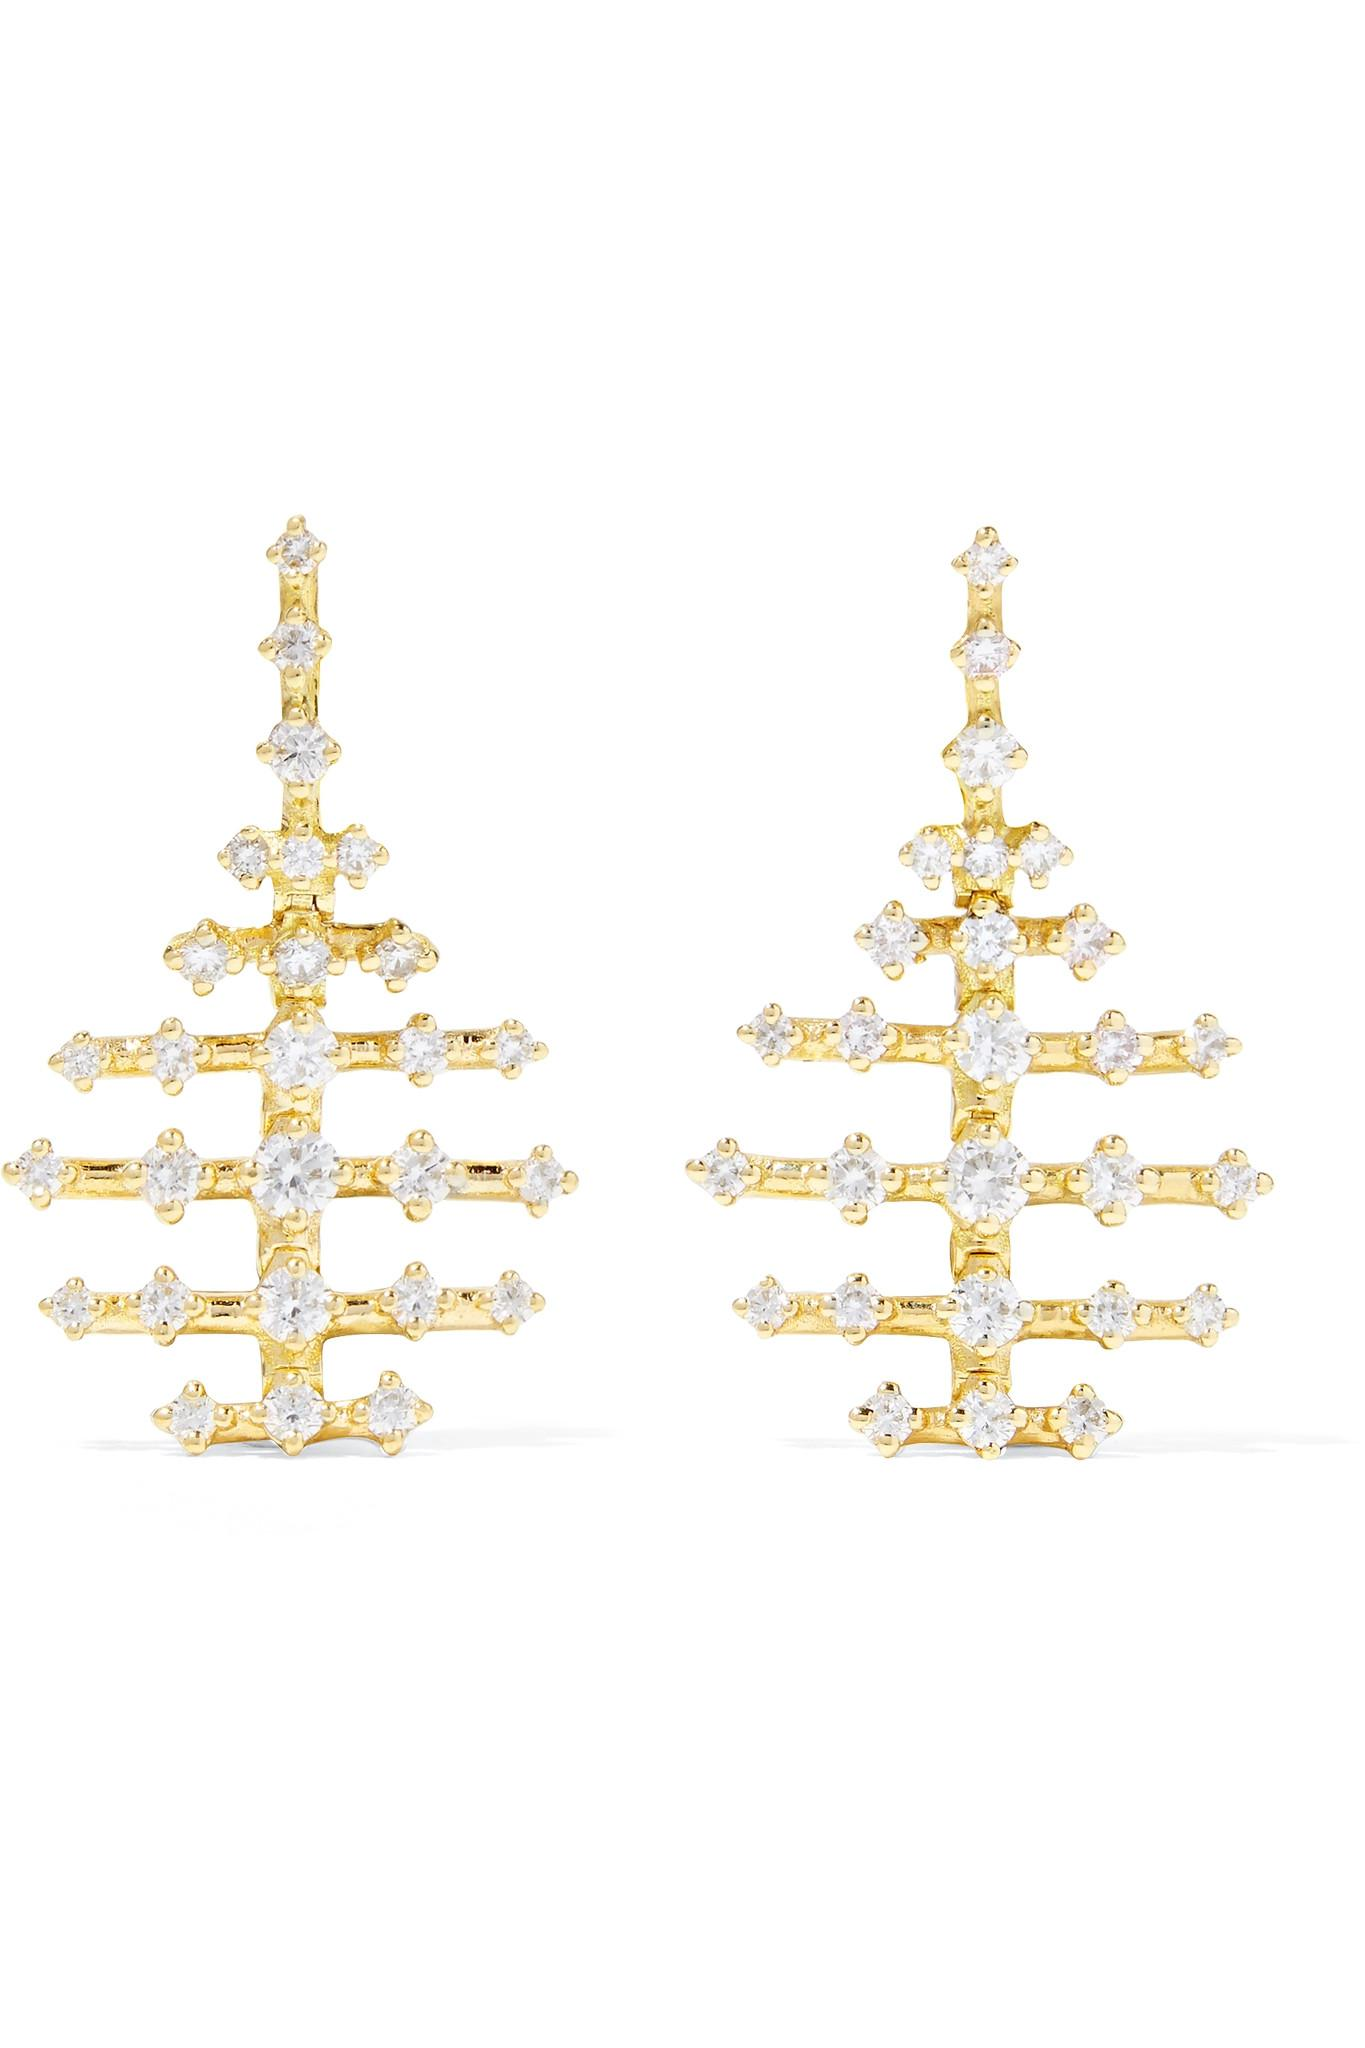 Fernando Jorge Mini Disco 18kt gold & diamond earrings